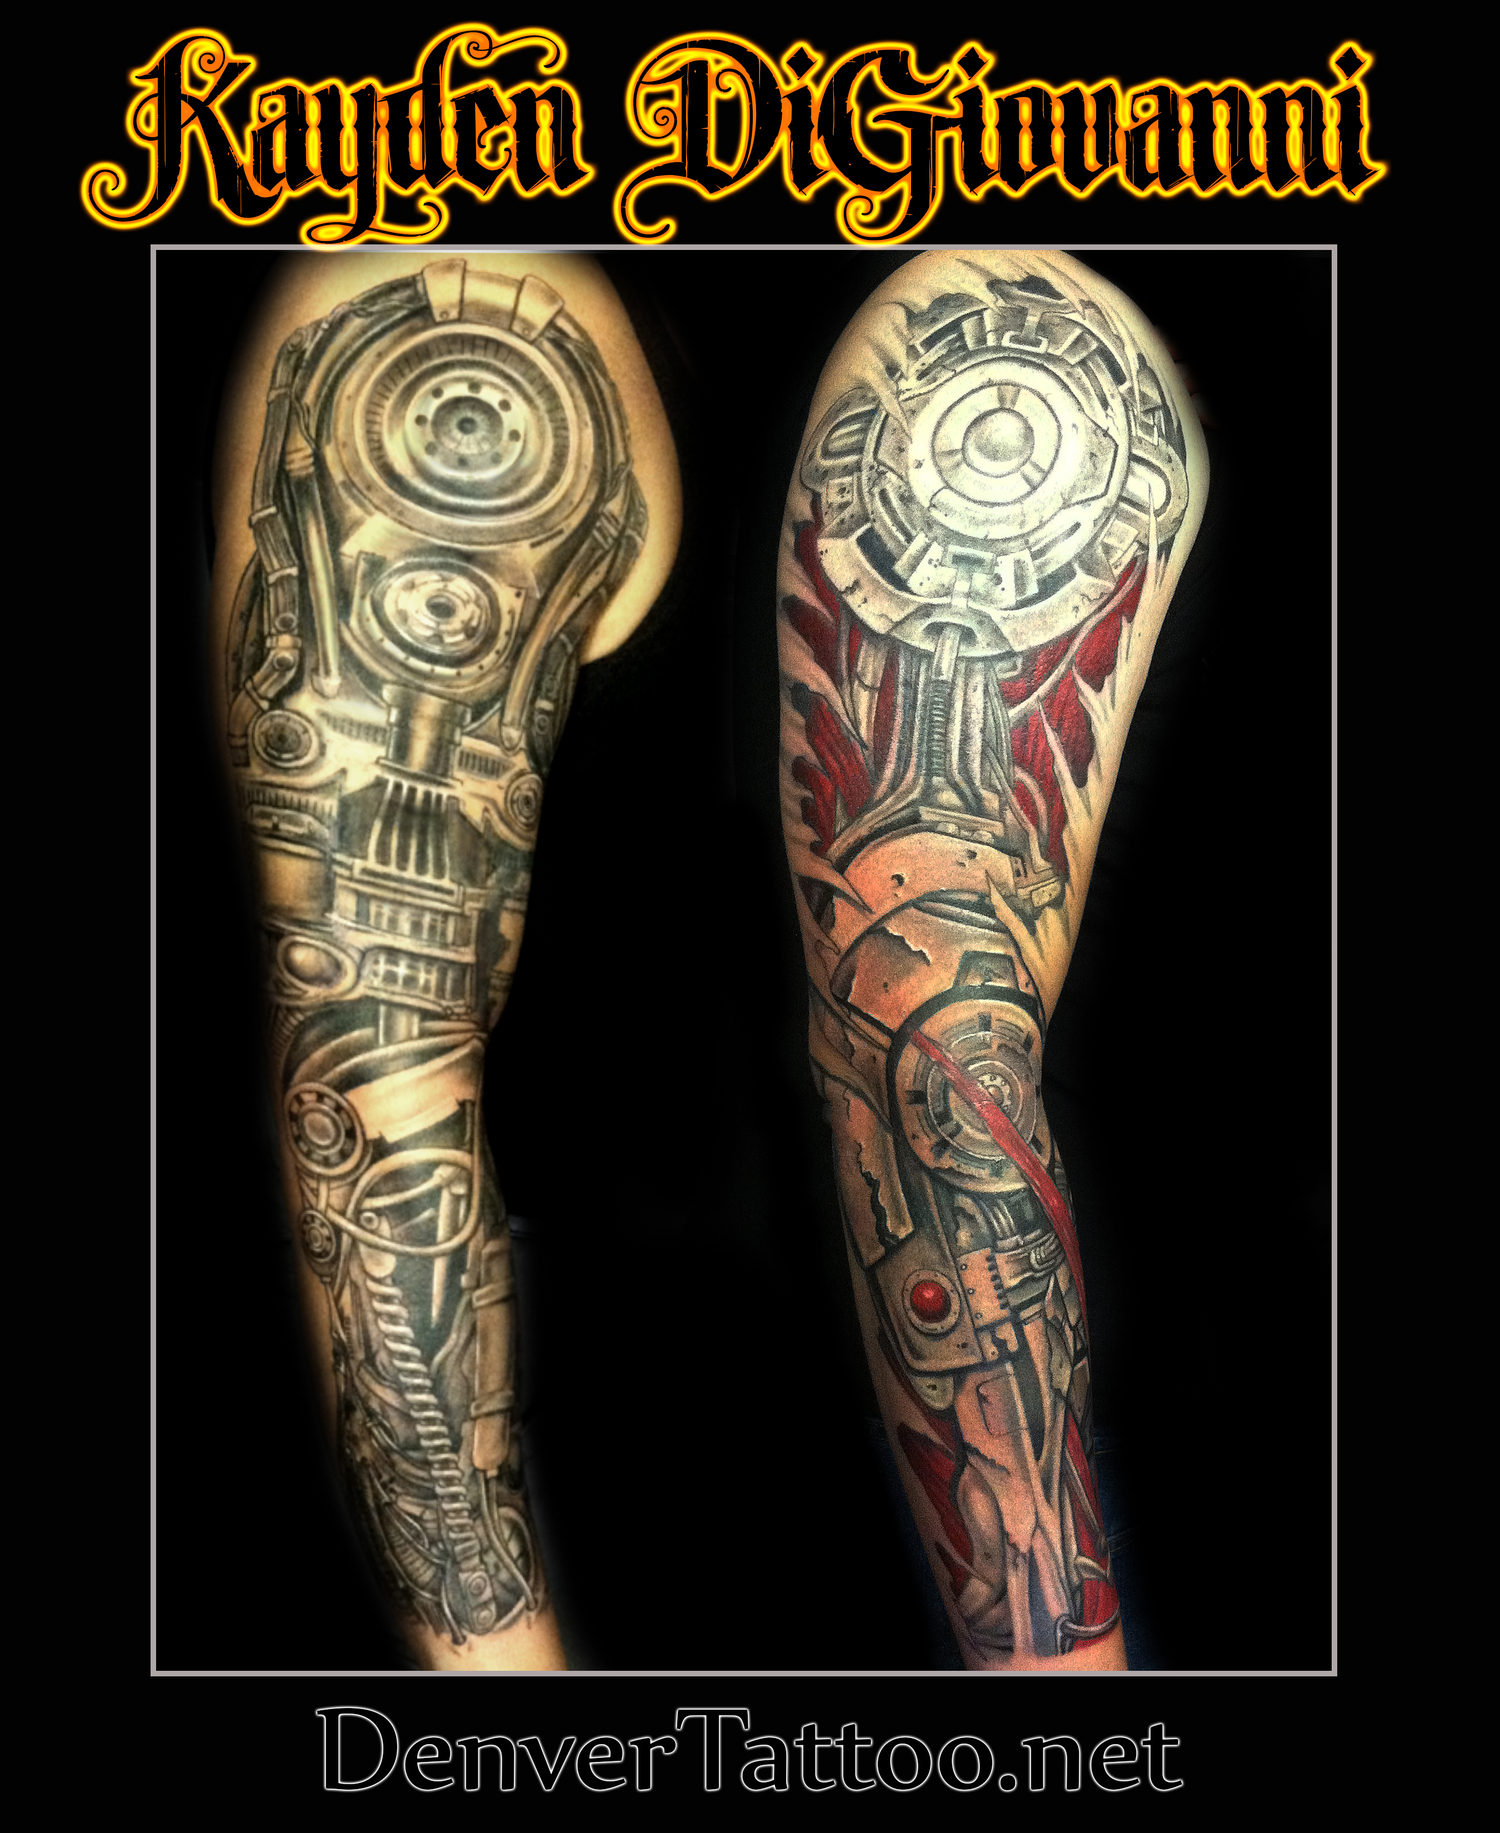 Biomechanical — Tattooer.net